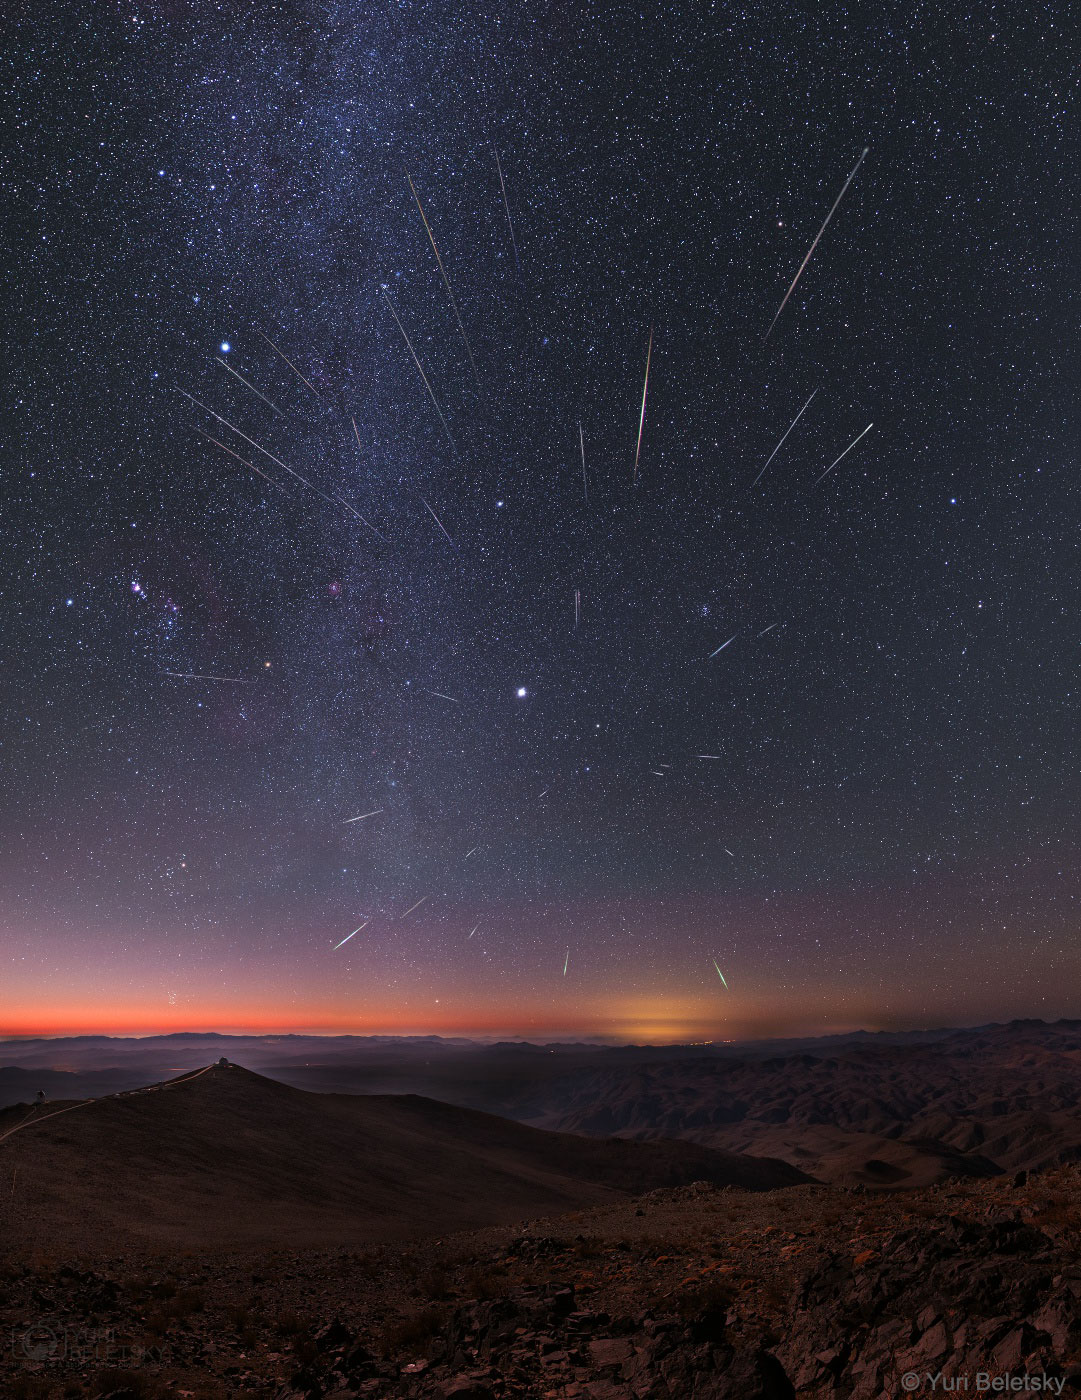 APOD: 2019 December 8 - Geminid Meteors over Chile